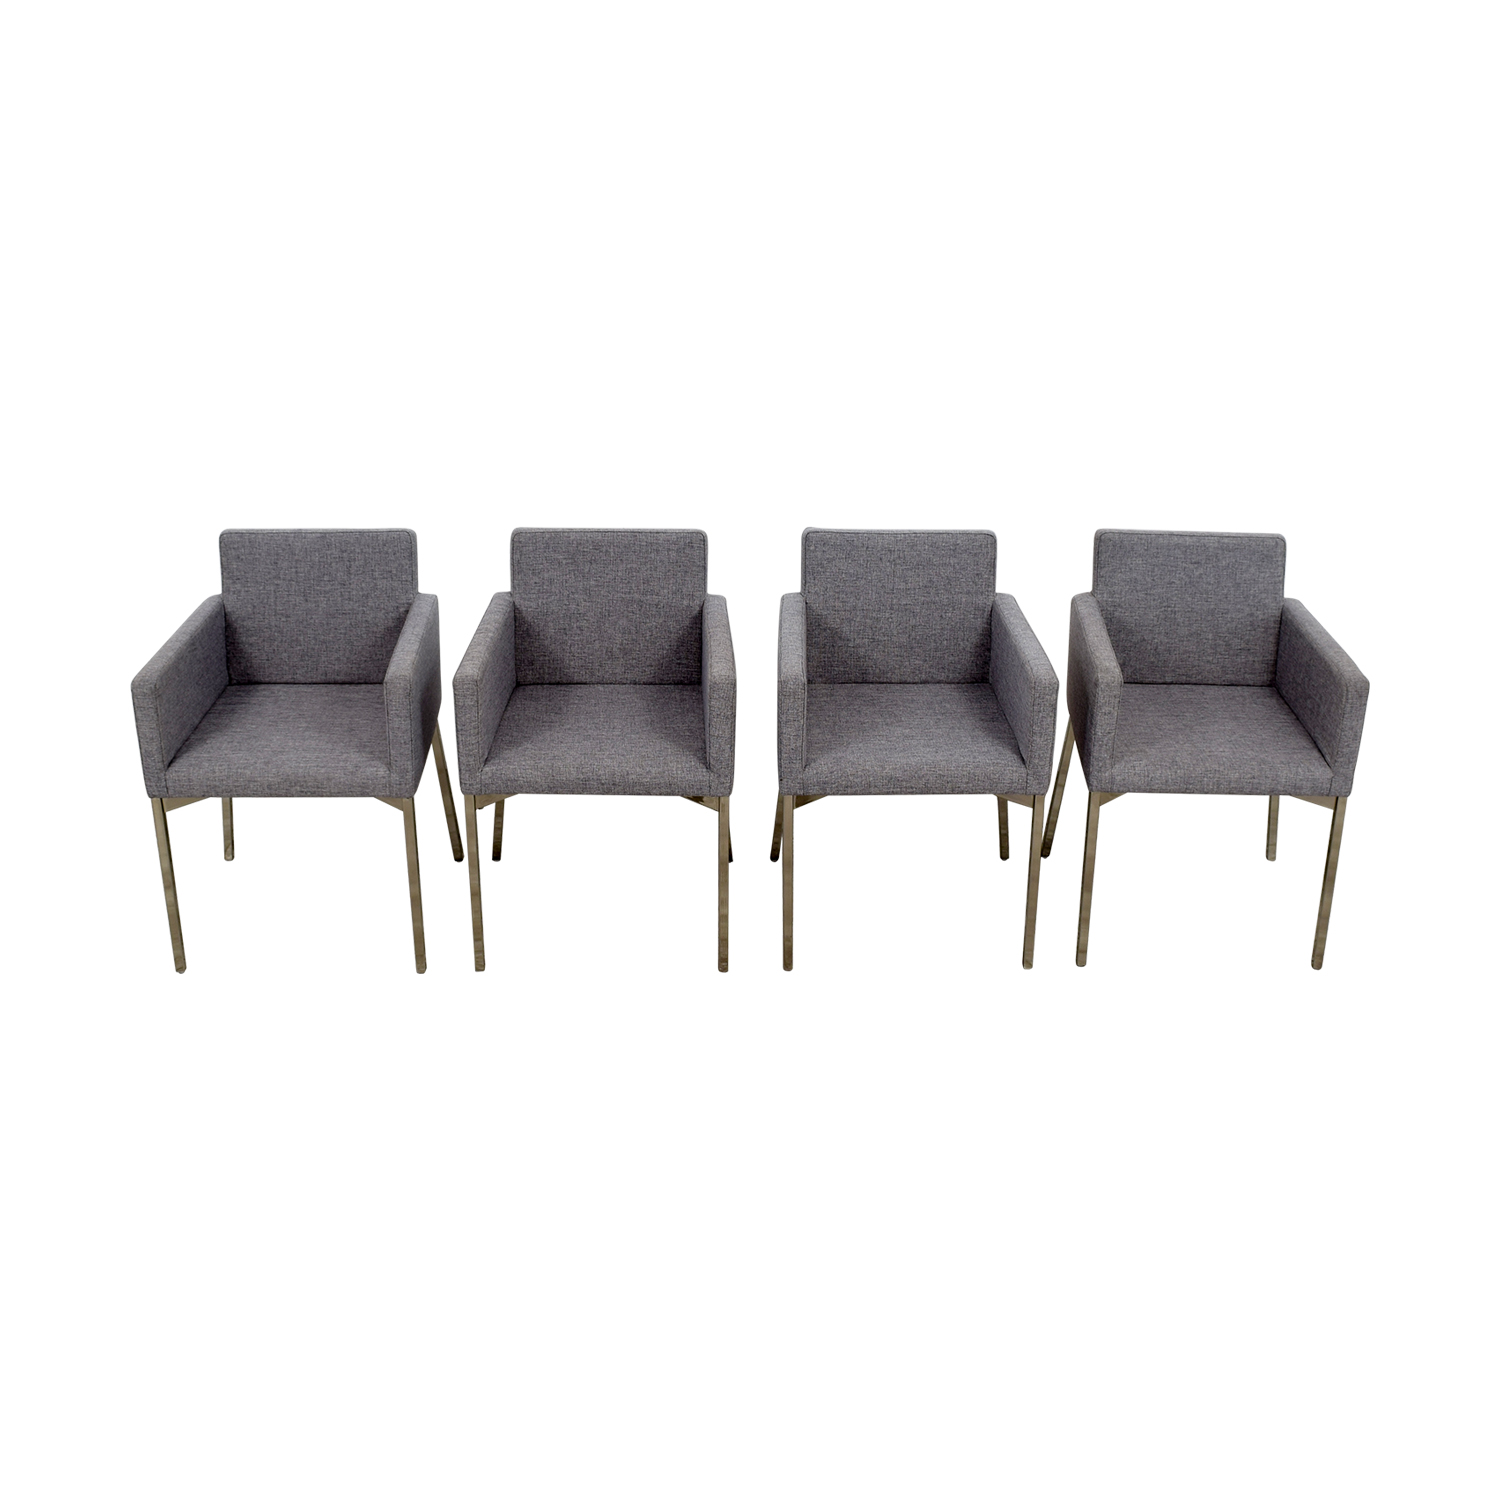 CB2 CB2 Gray Chairs on sale